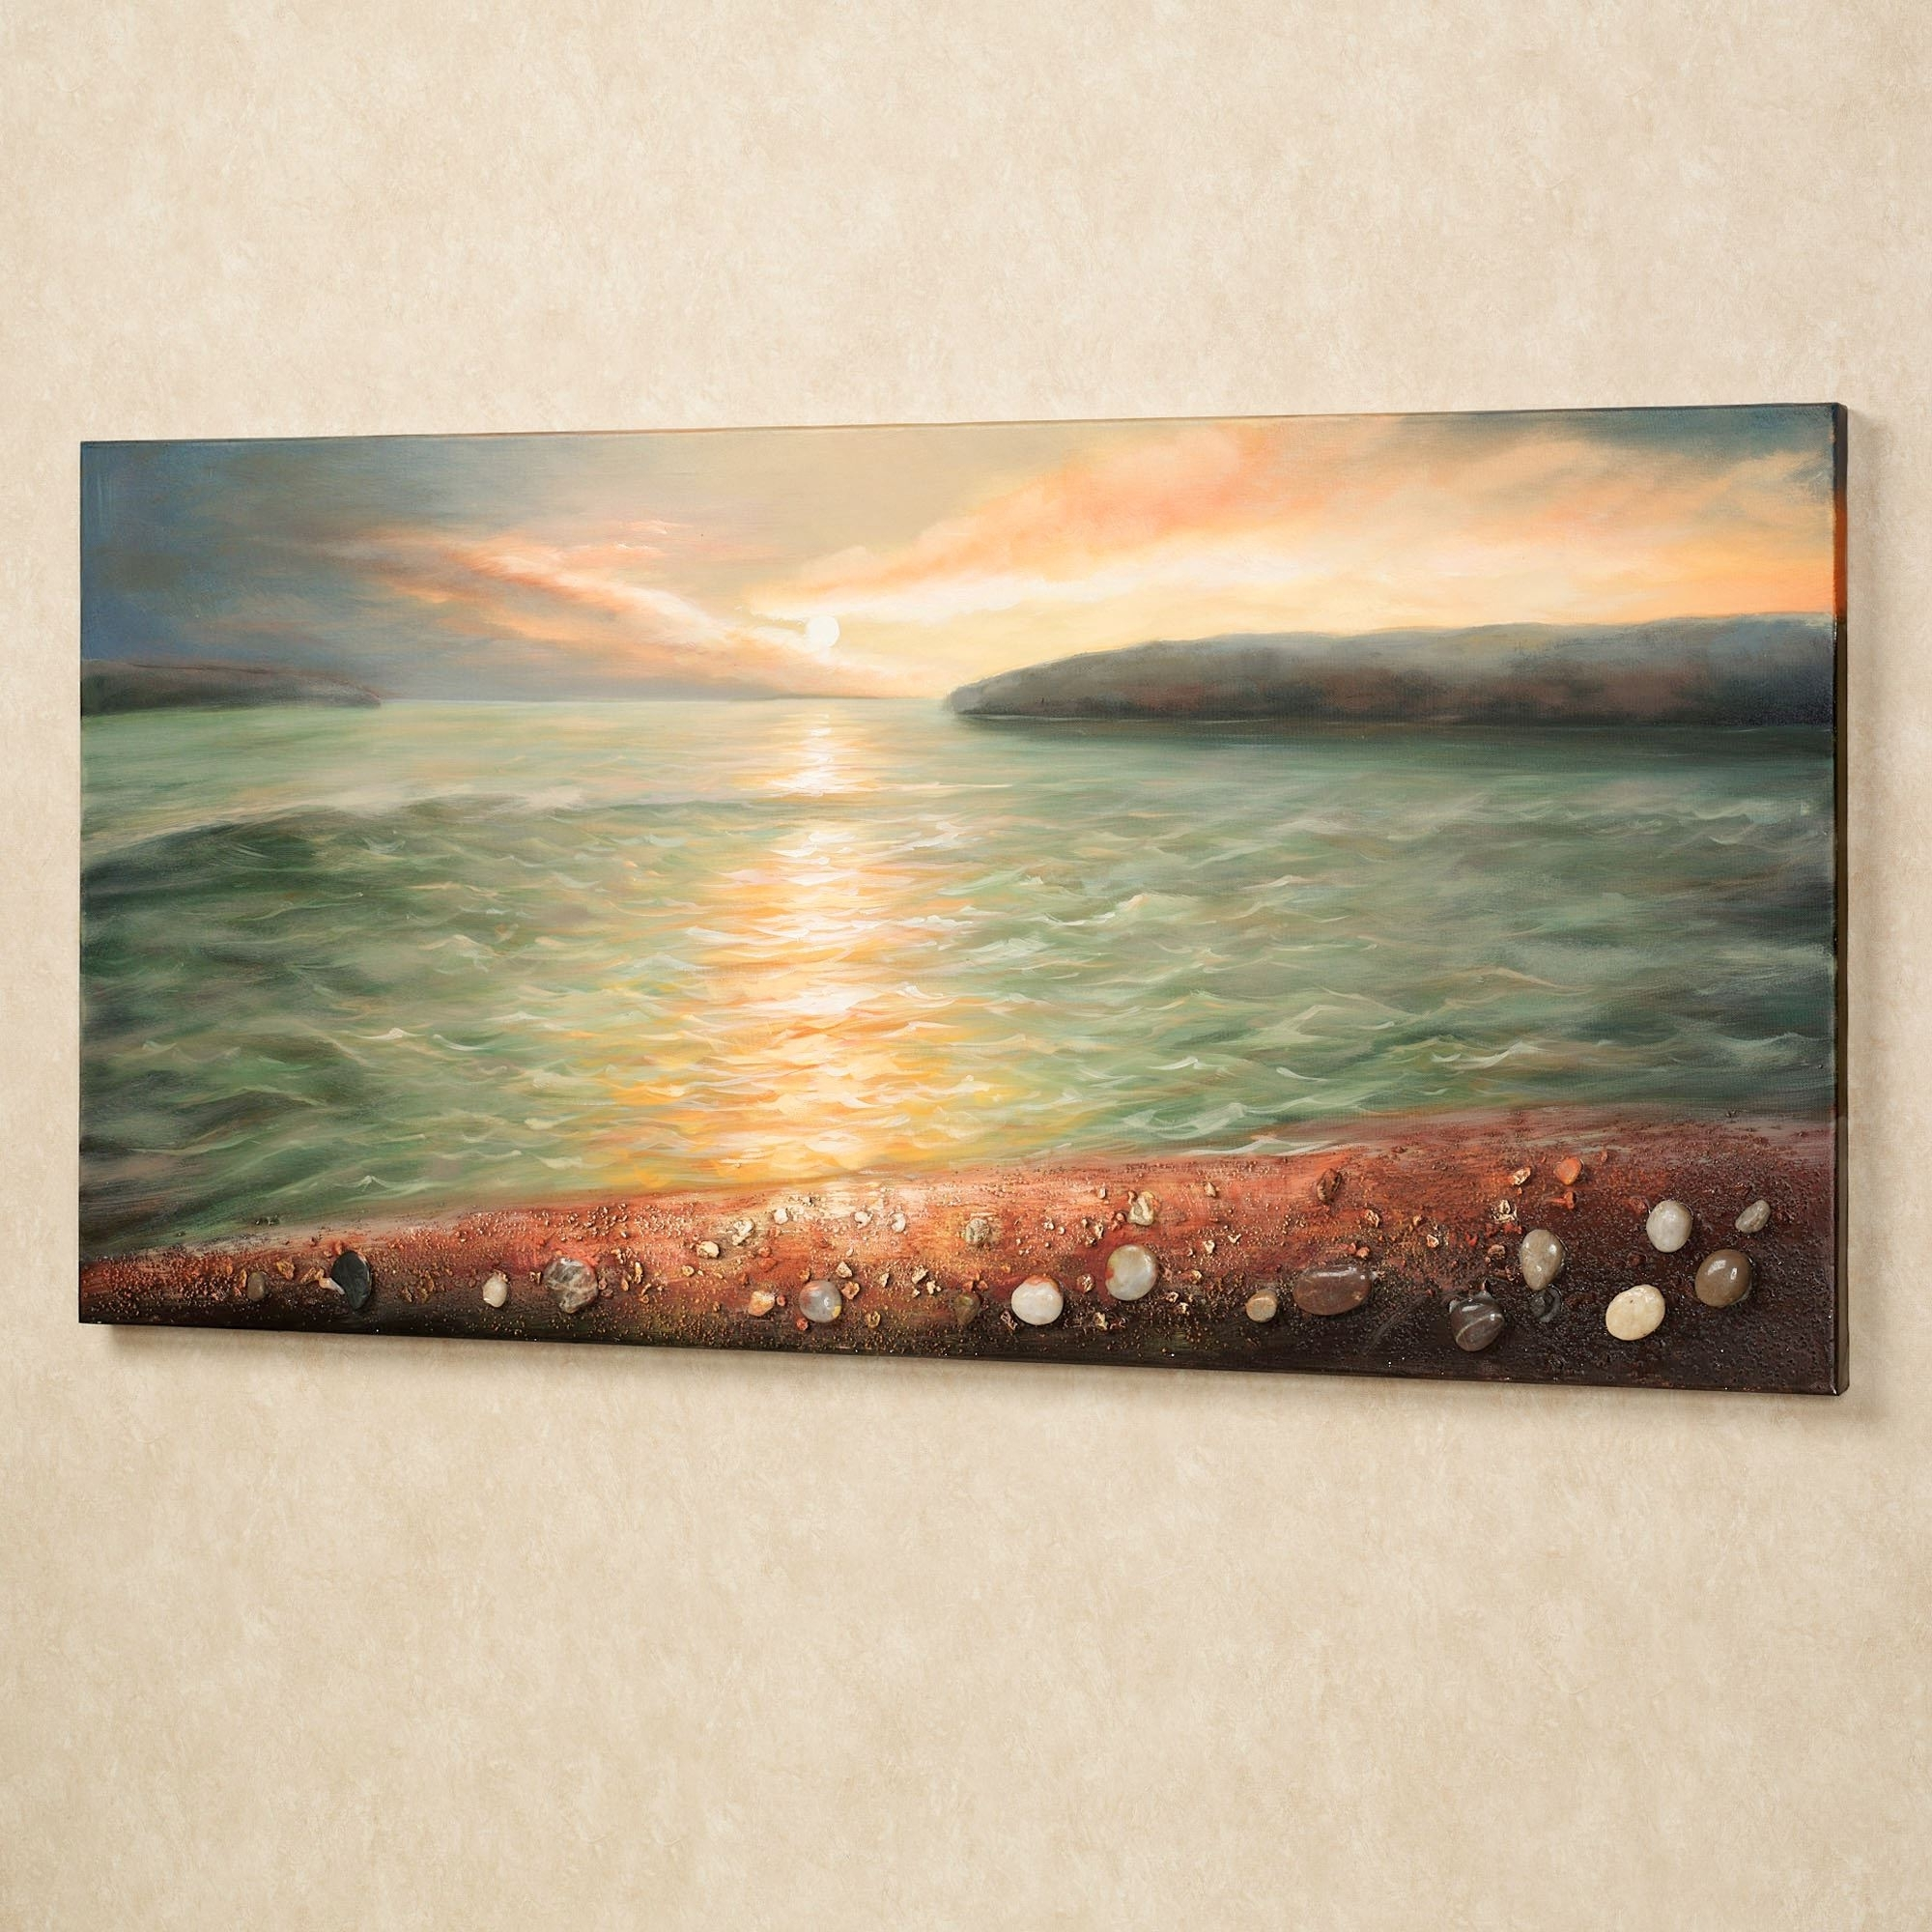 Most Popular Sunrise On Pebble Beach Canvas Wall Art For Coastal Wall Art Canvas (View 8 of 15)